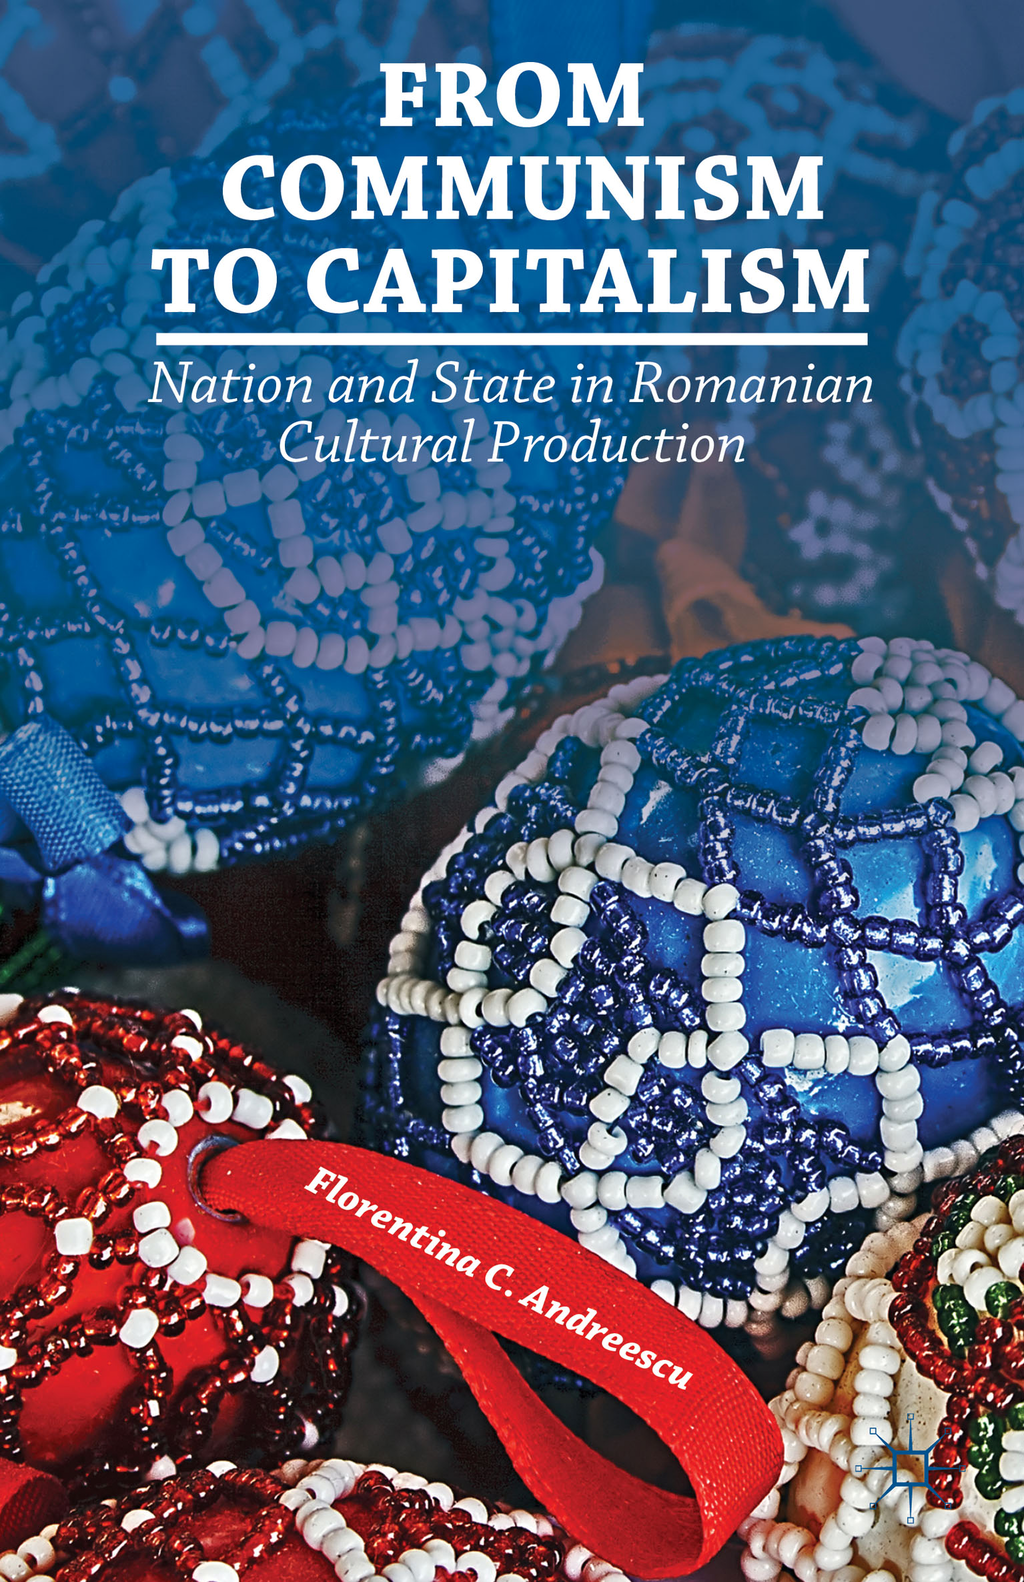 From Communism to Capitalism Nation and State in Romanian Cultural Production